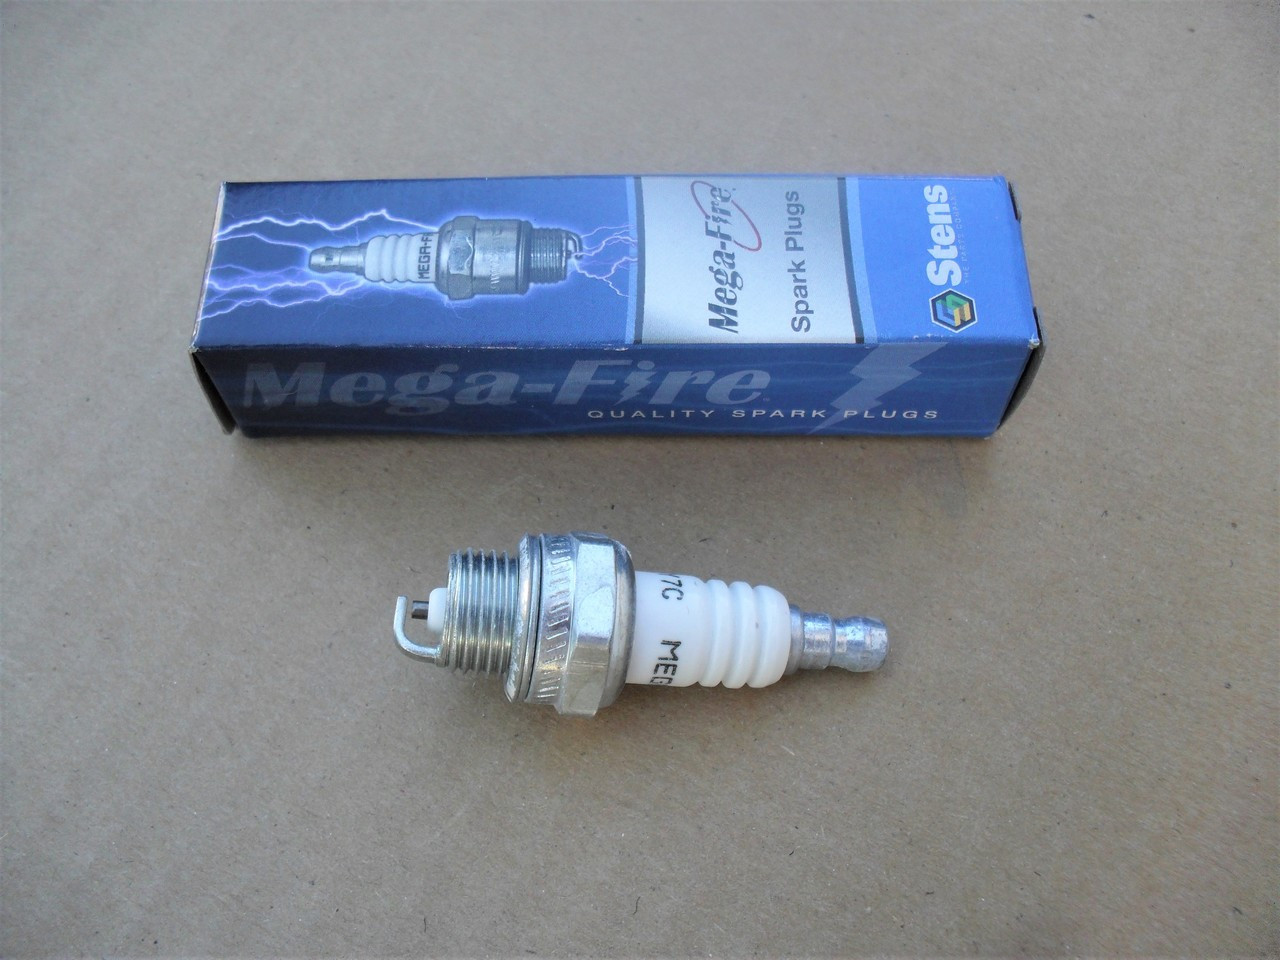 4 CHAMPION SPARK PLUGS CJ7Y